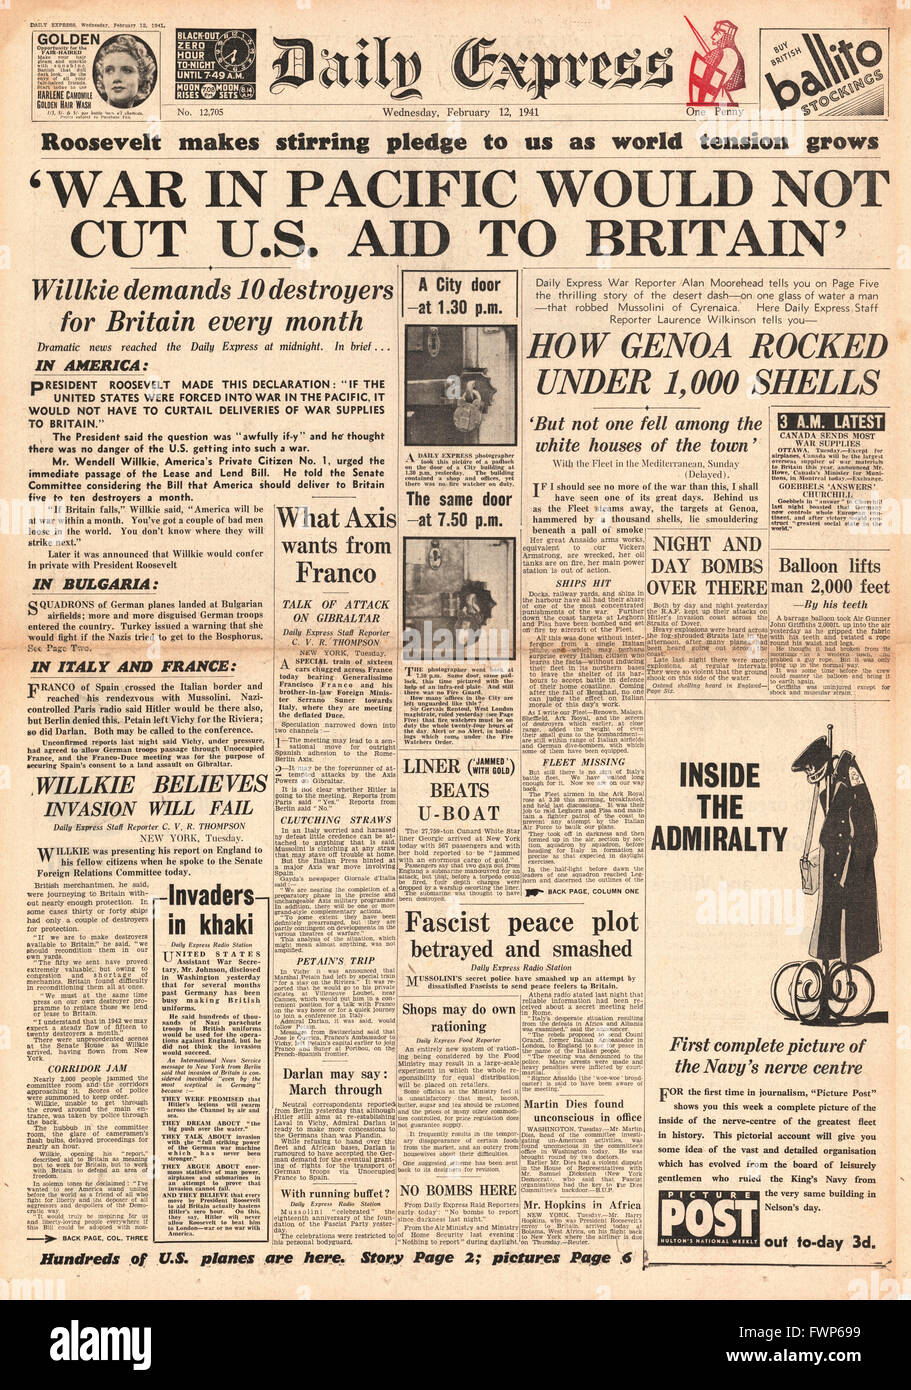 1941 front page  Daily Express Roosevelt pledges aid to Britain regardless of a possible war in the Pacific - Stock Image